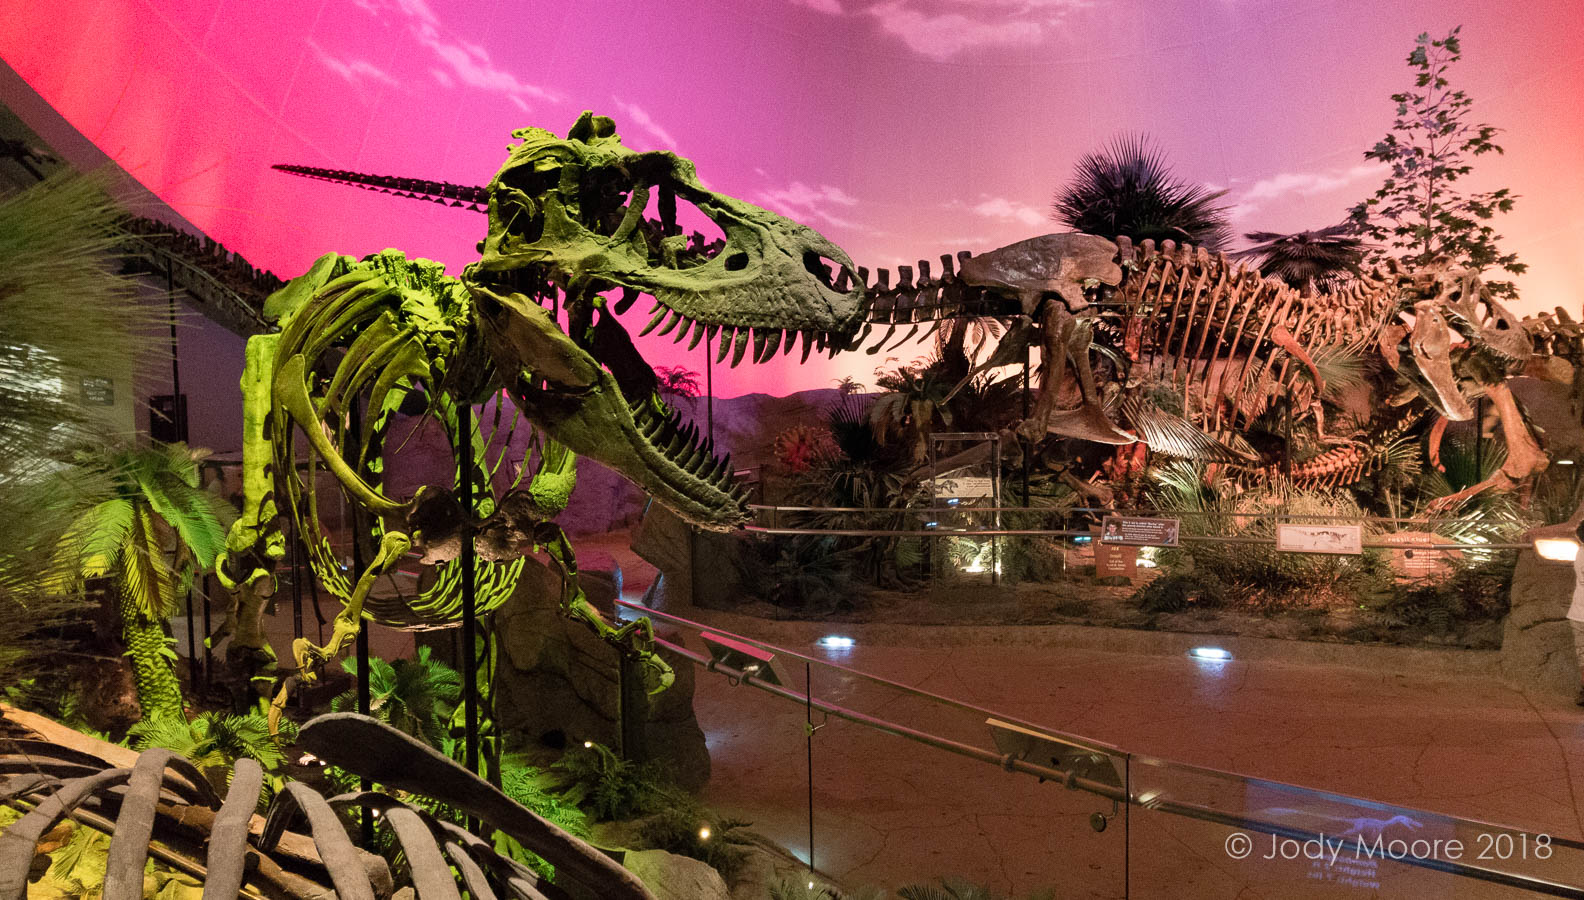 Gorgosaurus libratus specimen TCMI 2001.89.1 shares the Dinosphere with Bucky the T.rex and others at the Indianapolis Children's Museum.